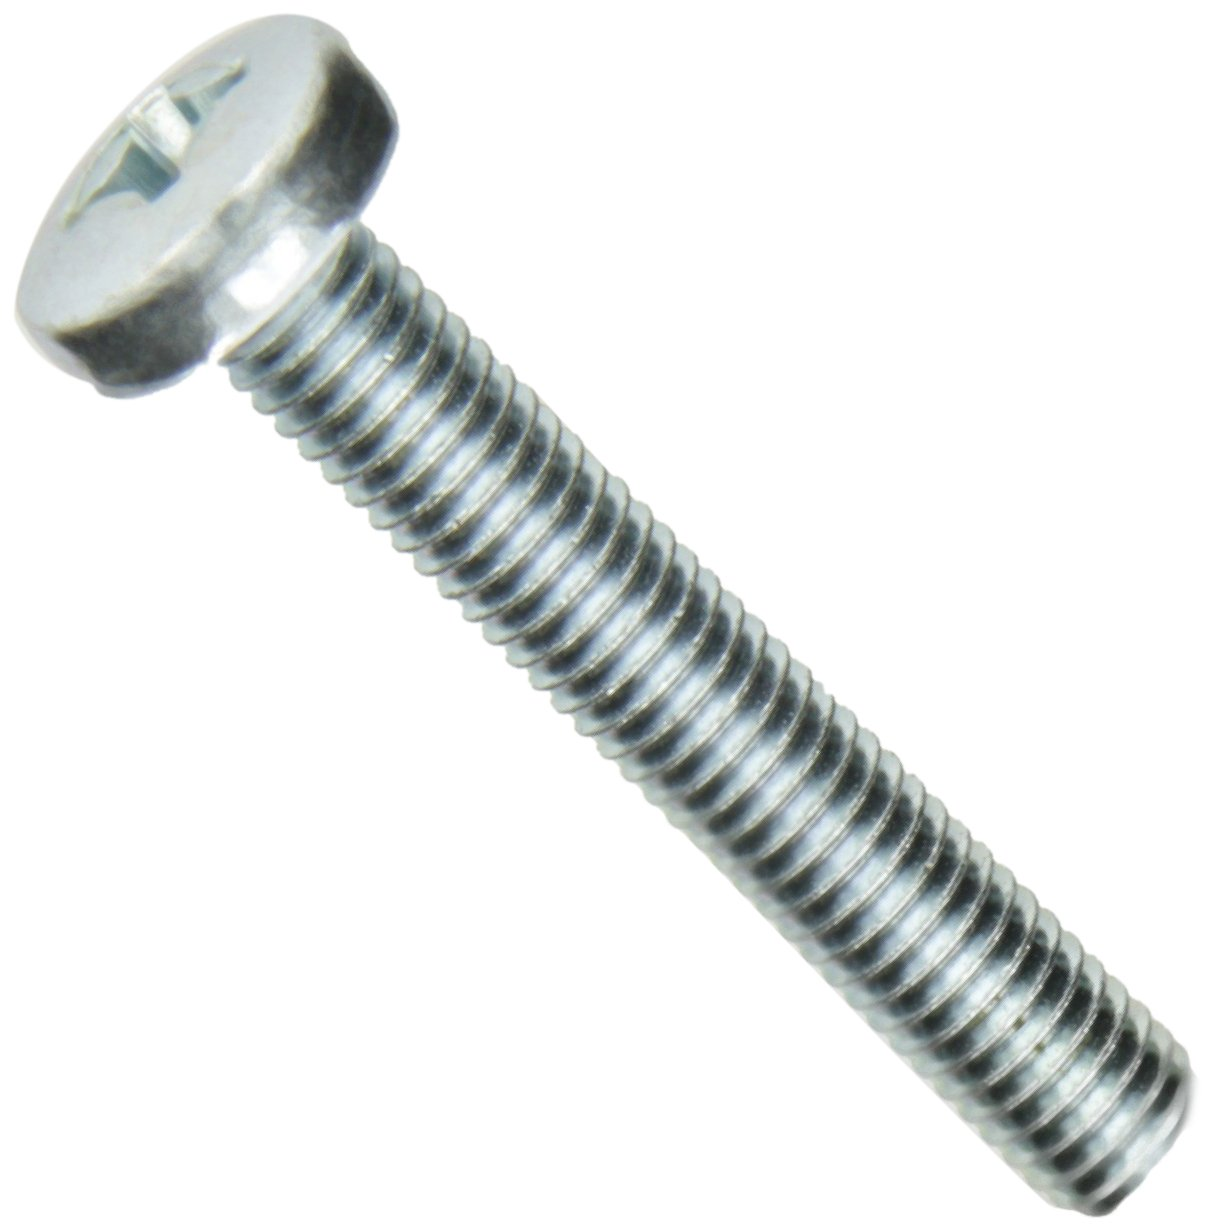 Pan Head Fully Threaded Small Parts FSCM850PPSZ 50mm Length Meets DIN 7985 Zinc Plated Finish M8-1.25 Metric Coarse Threads Pack of 5 Steel Machine Screw Phillips Drive